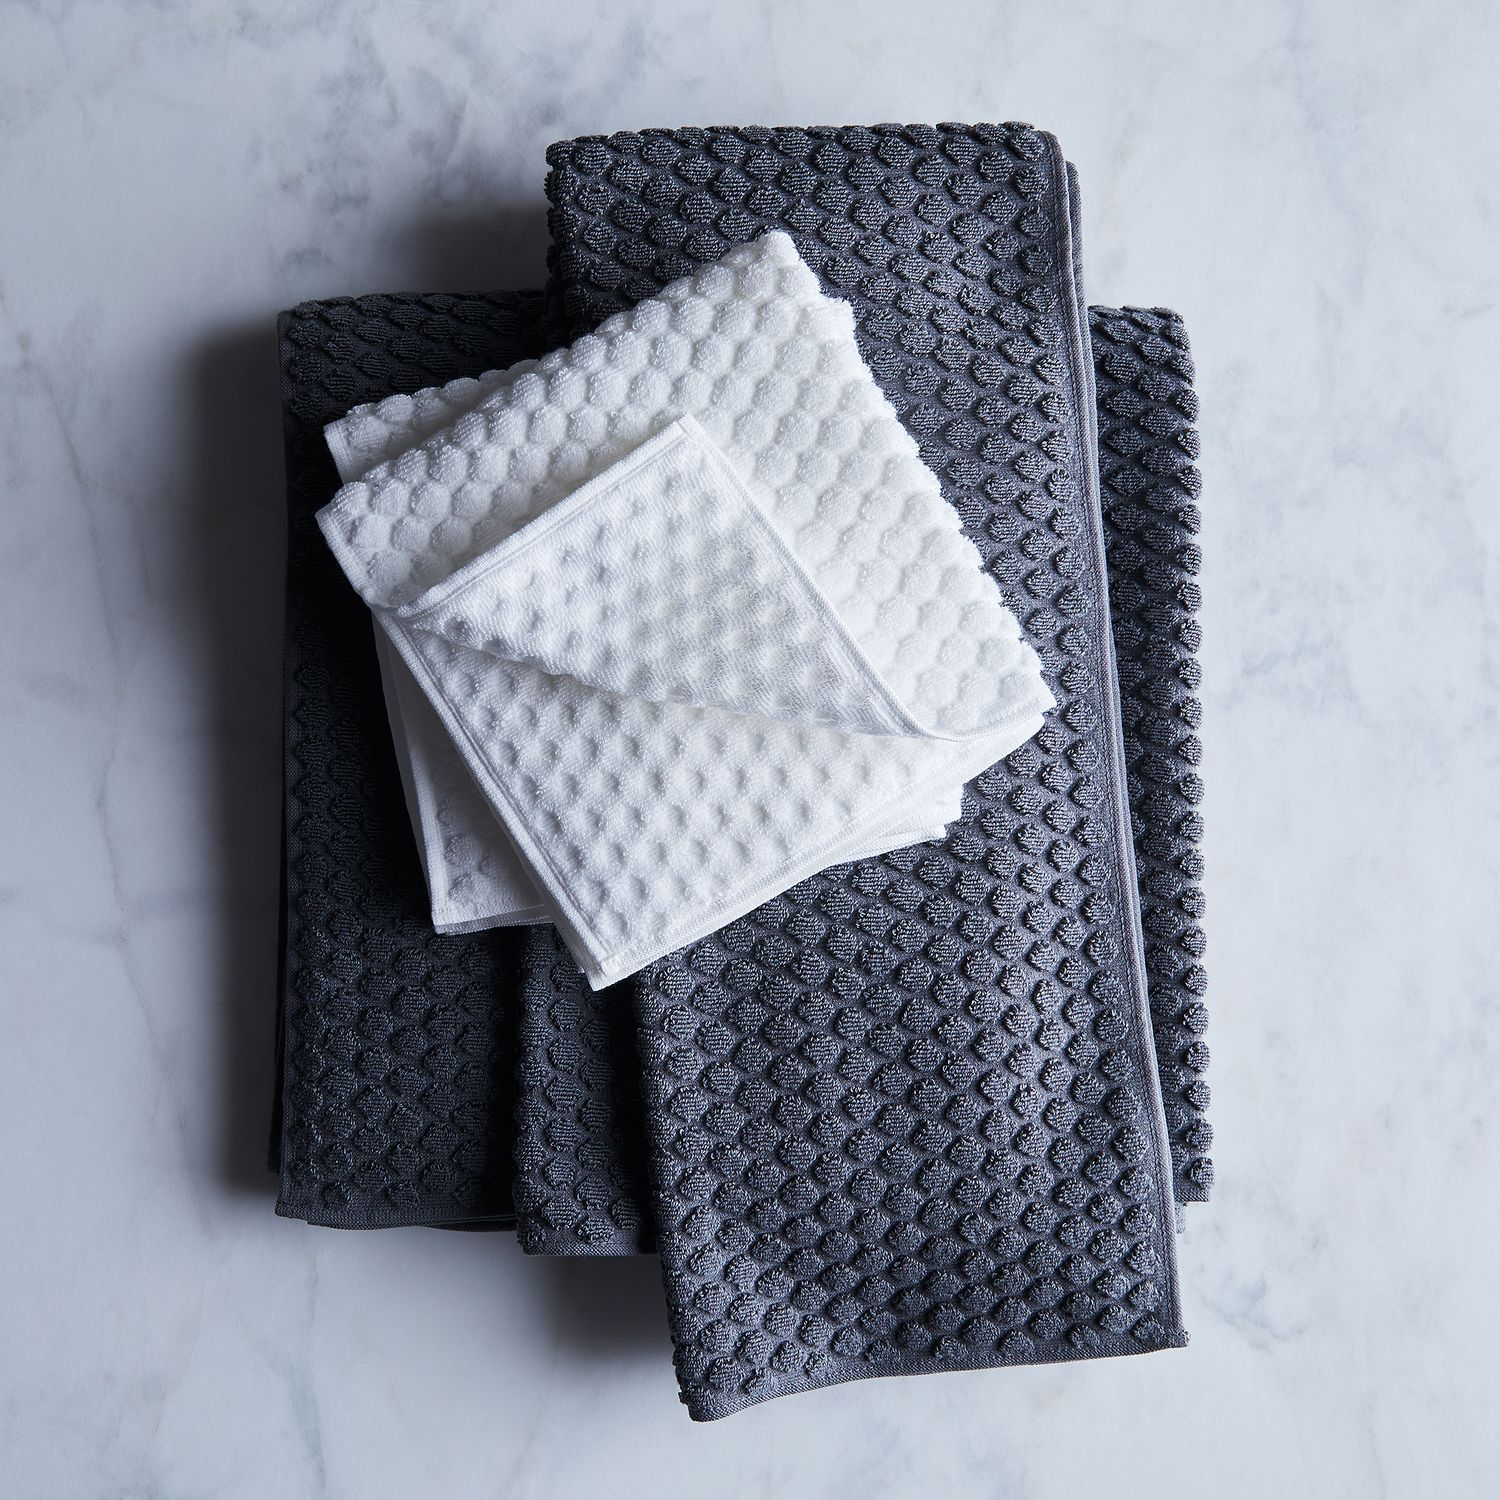 Japanese Linen Towel: Puchi Puchi Japanese Textured Bath Towels On Food52